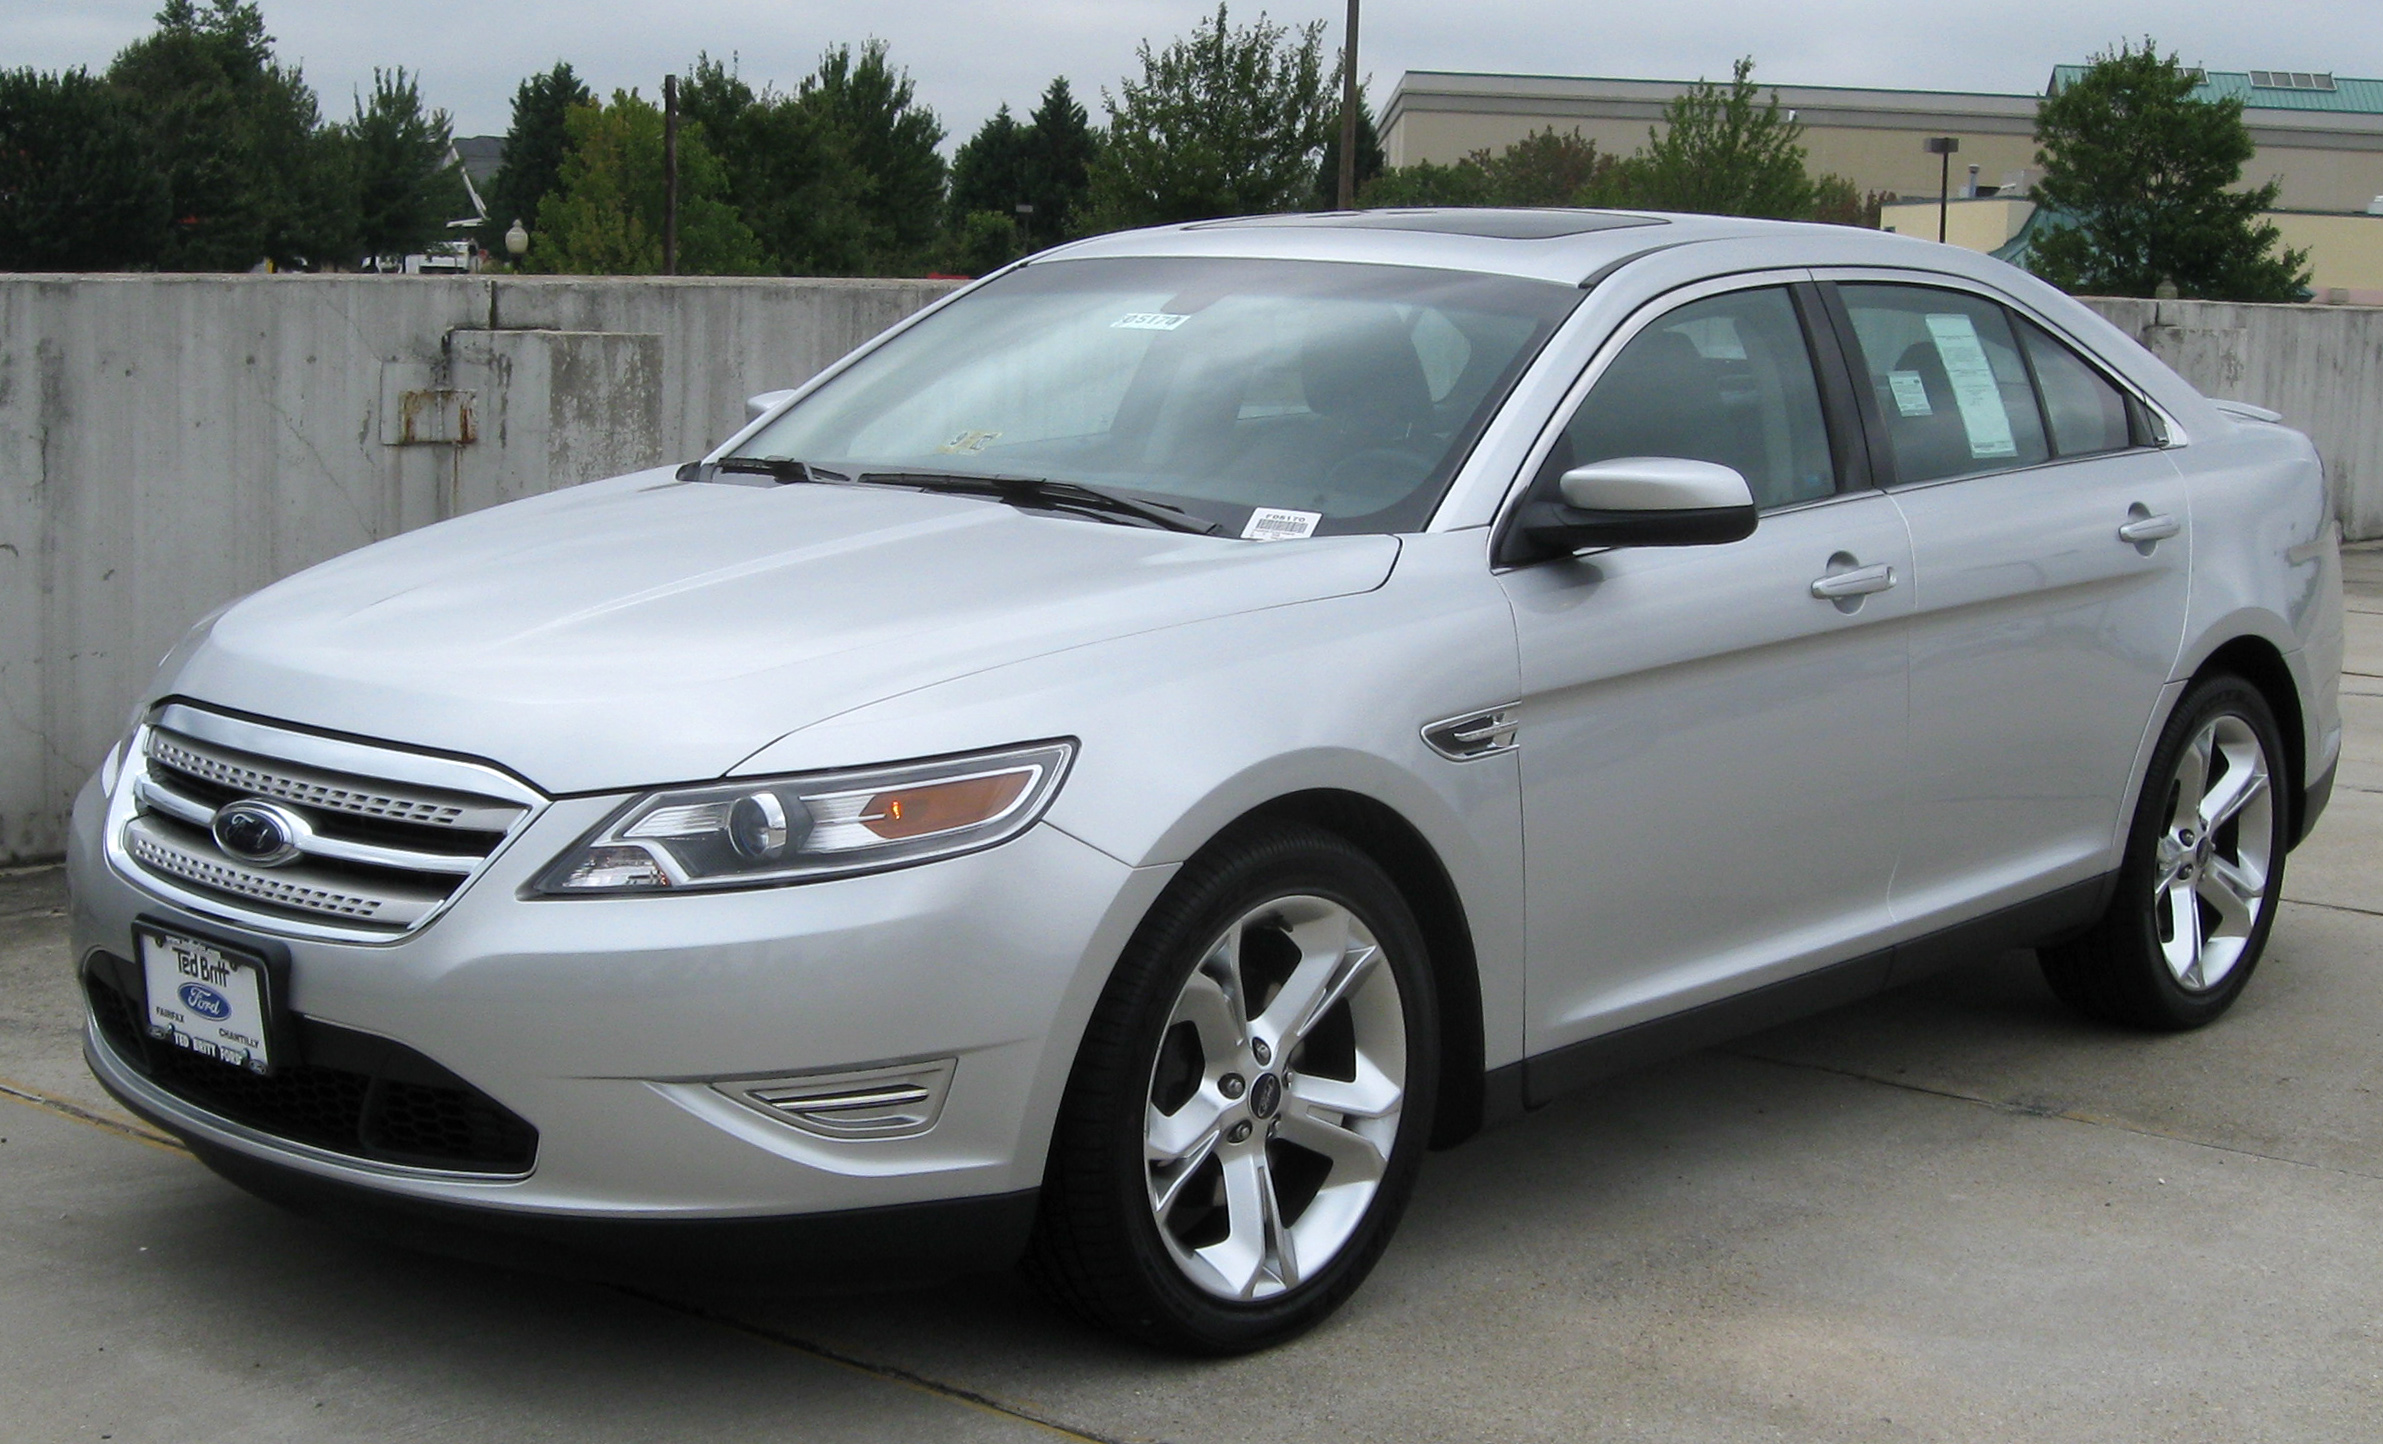 Ford Taurus Limousine Ford Taurus Sedan 2009–2012